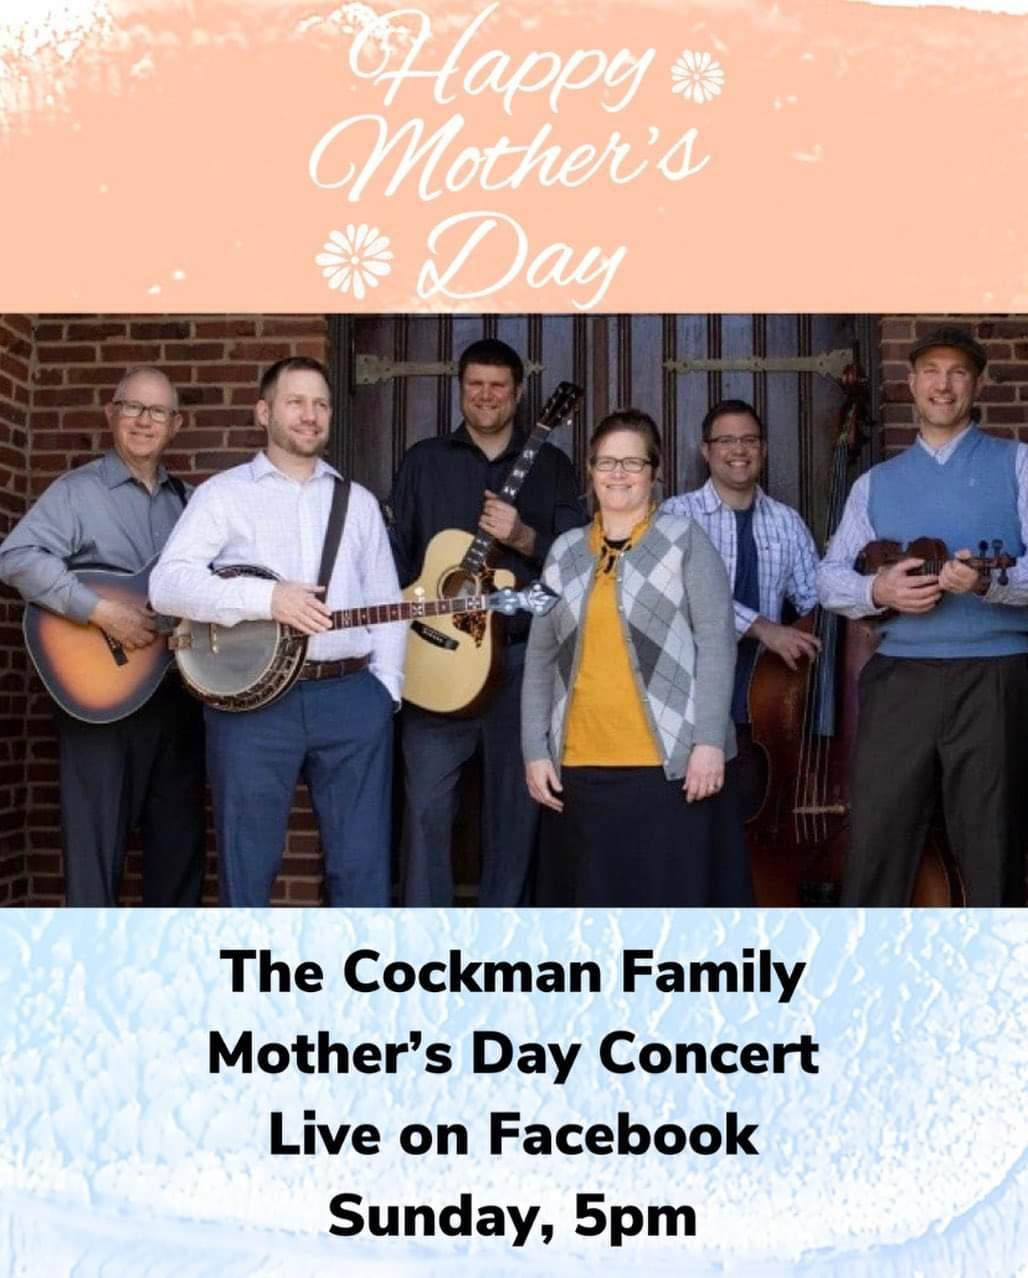 the cockman family mother's day concert